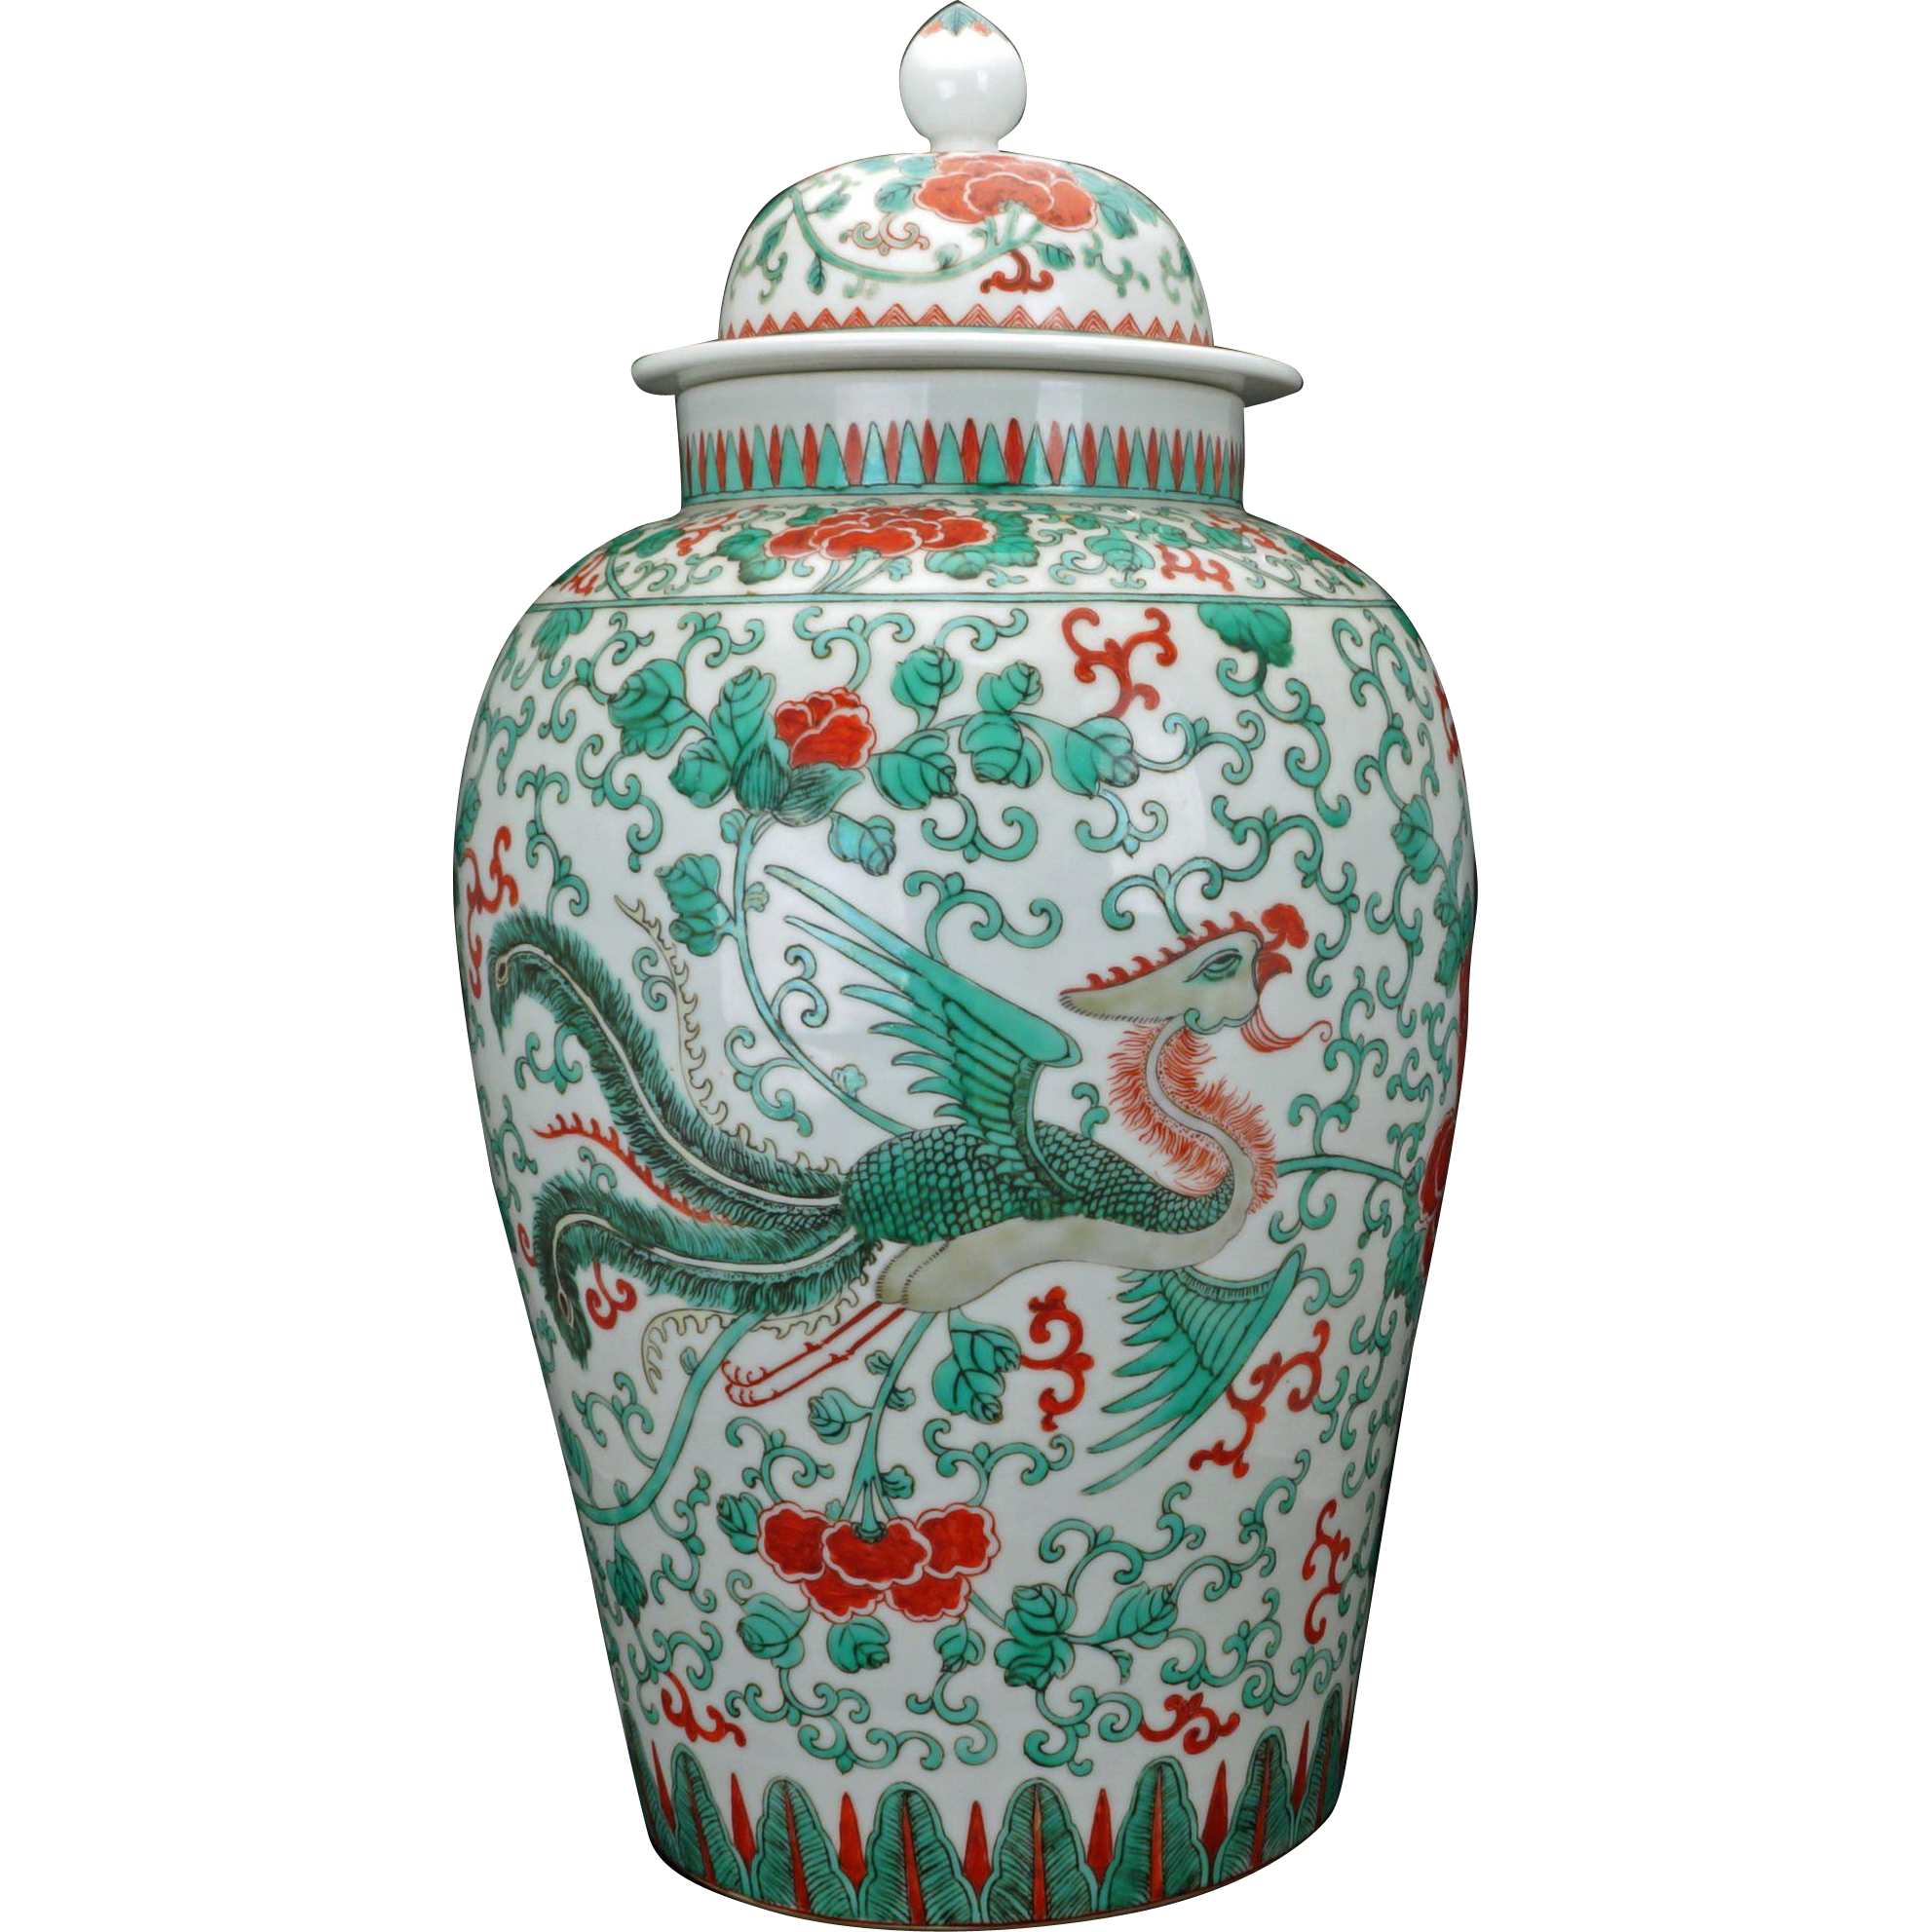 Antique large chinese porcelain famille verte palace vase or jar antique large chinese porcelain famille verte palace vase or jar with lid early mid 19th reviewsmspy